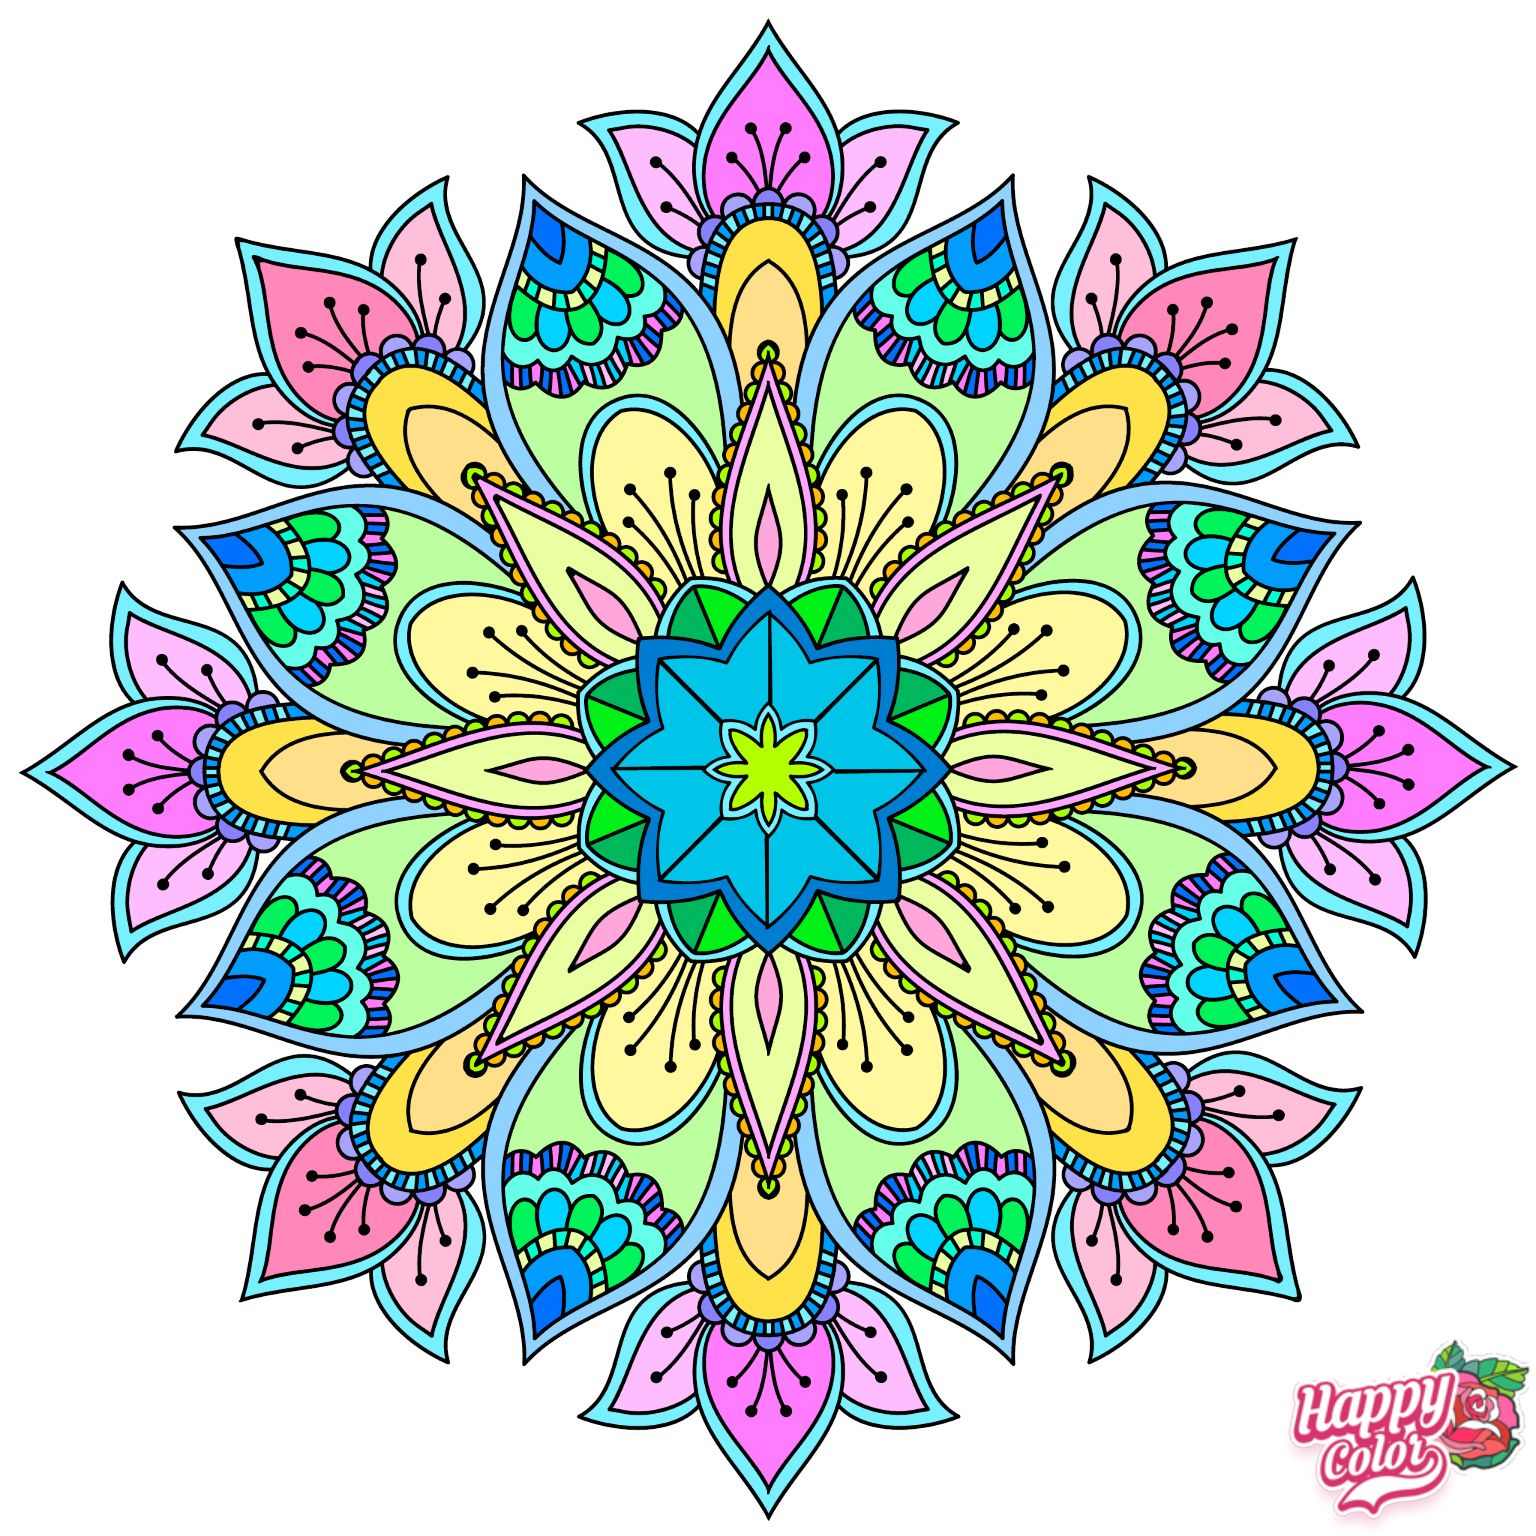 Pin By Deborah Kendrick Cummings On Happy Color In 2020 Happy Colors Tapestry Colouring Pics